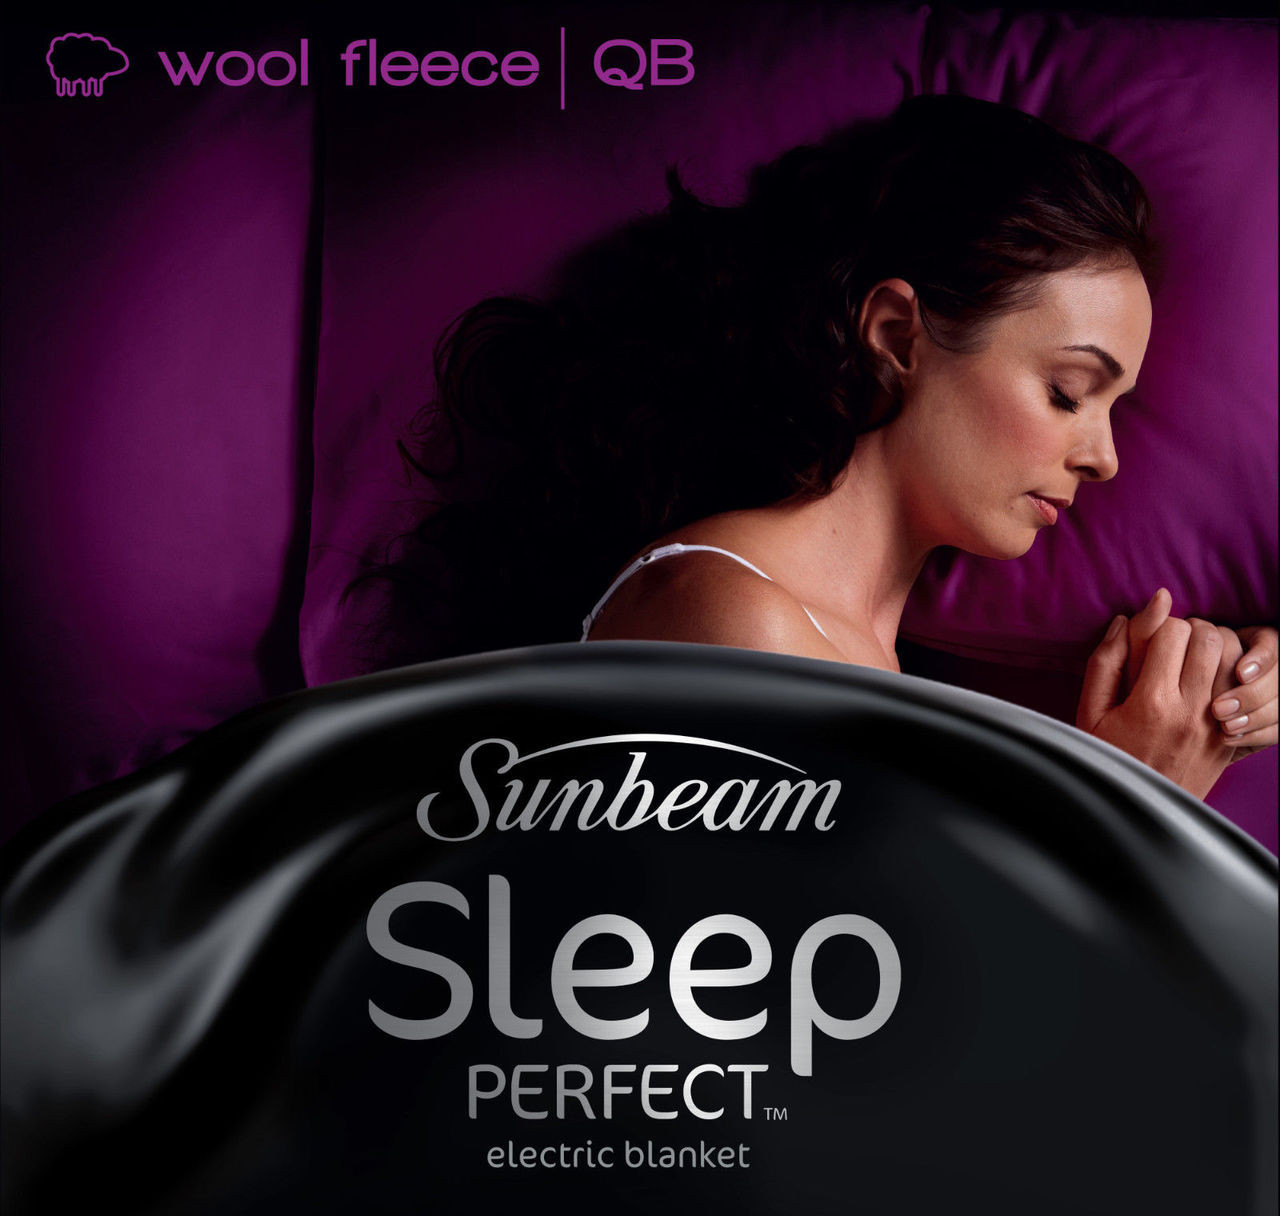 Sunbeam BL5651 Sleep Perfect™ Wool Fleece Heated Blanket - Queen Bed